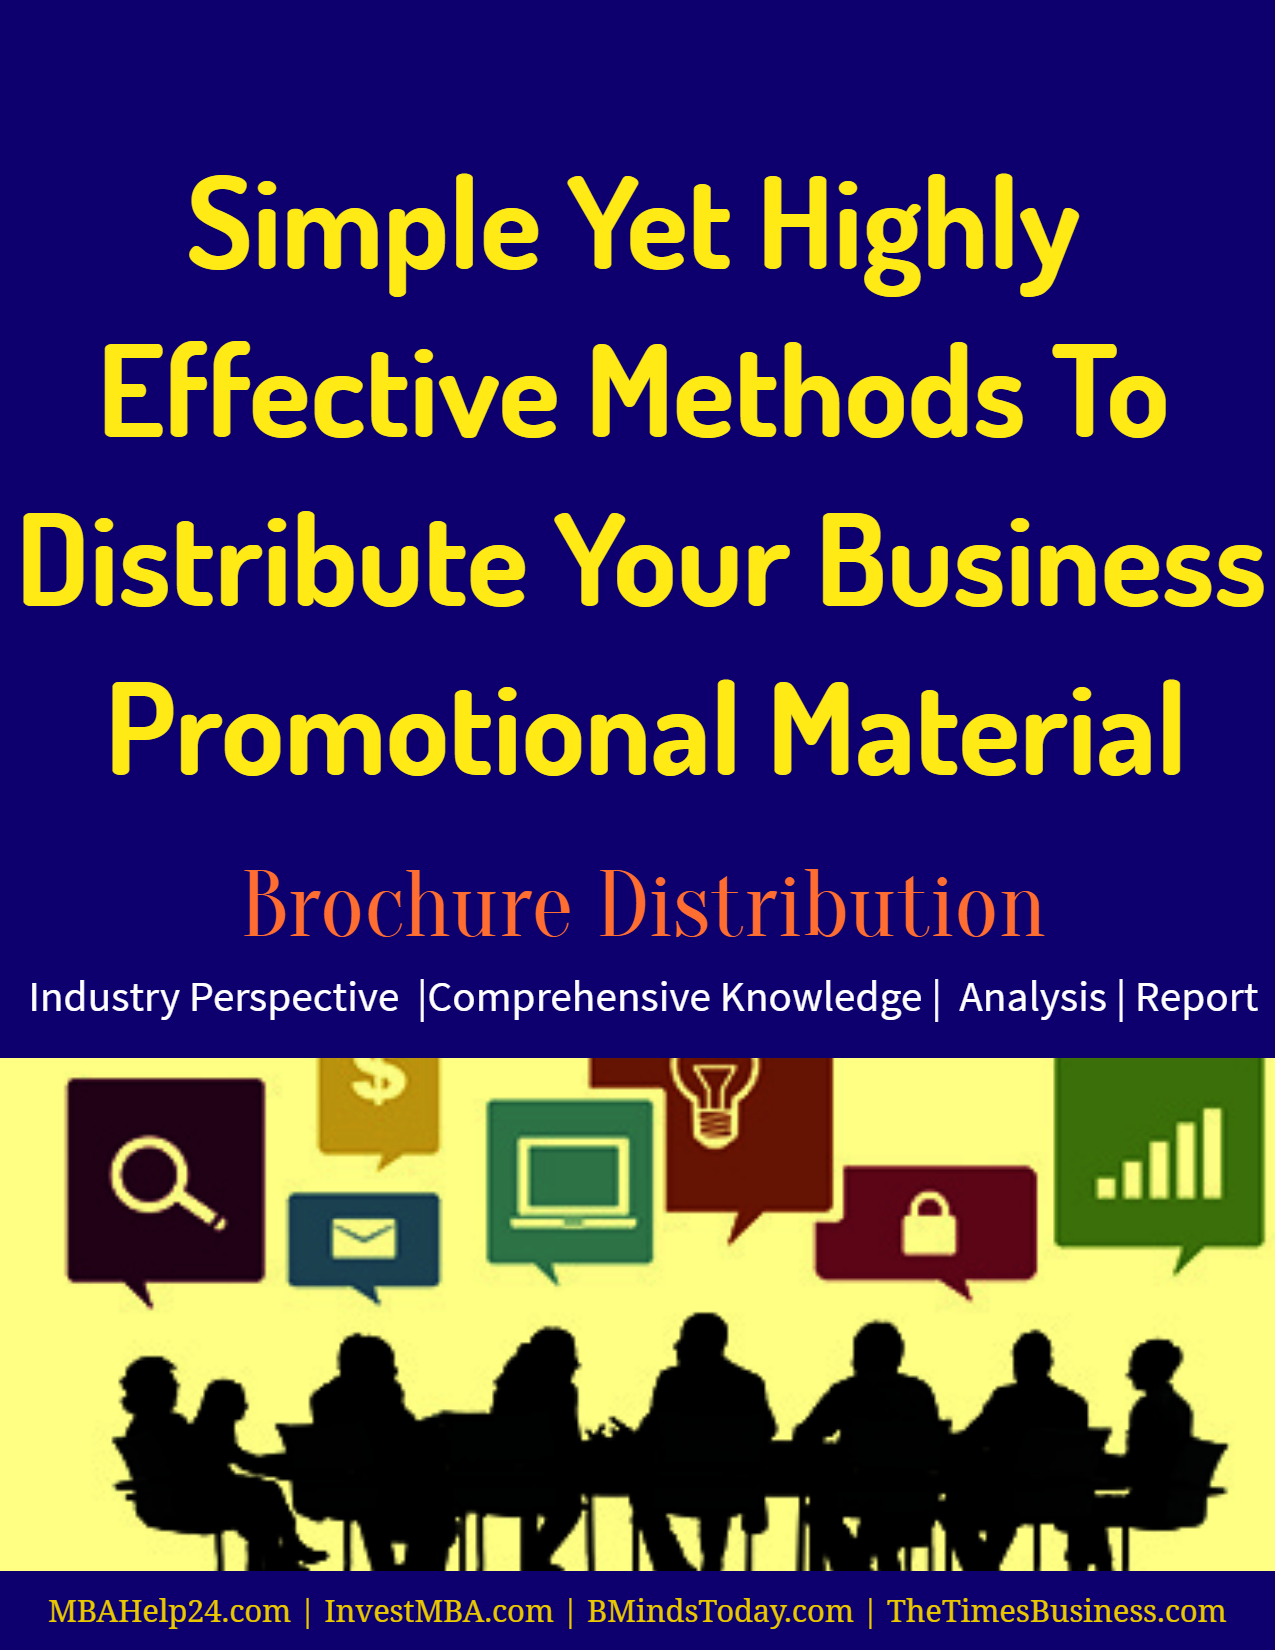 Simple Yet Highly Effective Methods To Distribute Business Promotional Material methods Simple Yet Highly Effective Methods To Distribute Business Promotional Material Simple Yet Highly Effective Methods To Distribute Business Promotional Material